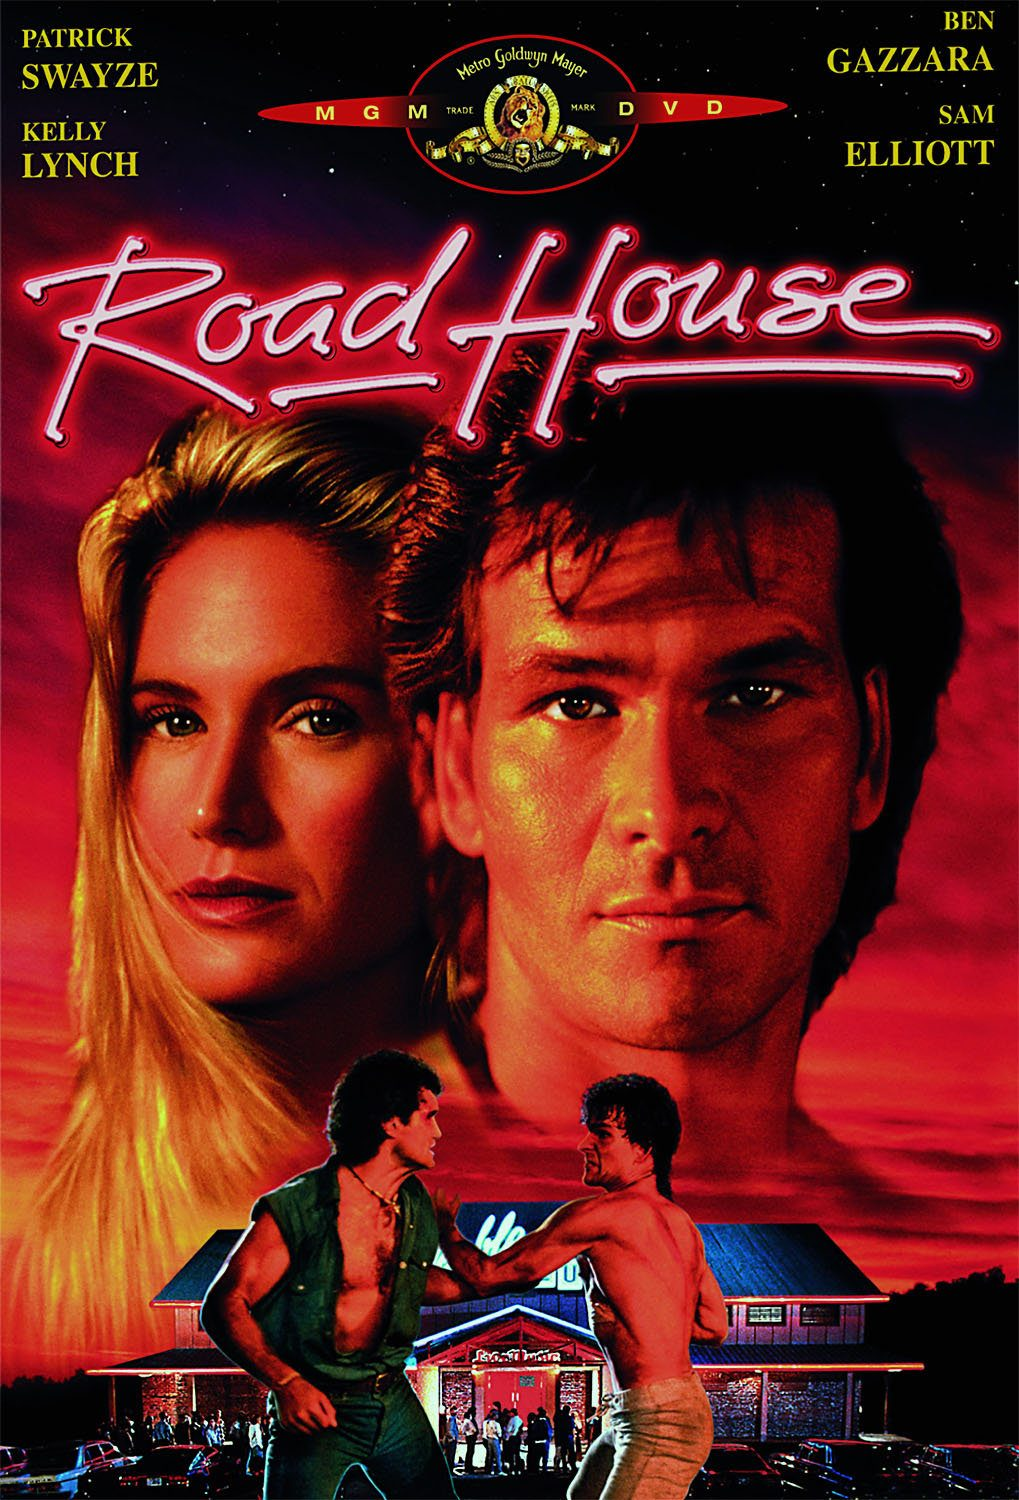 Nick Cassavetes to Write and Direct Upcoming 'Road House' Remake